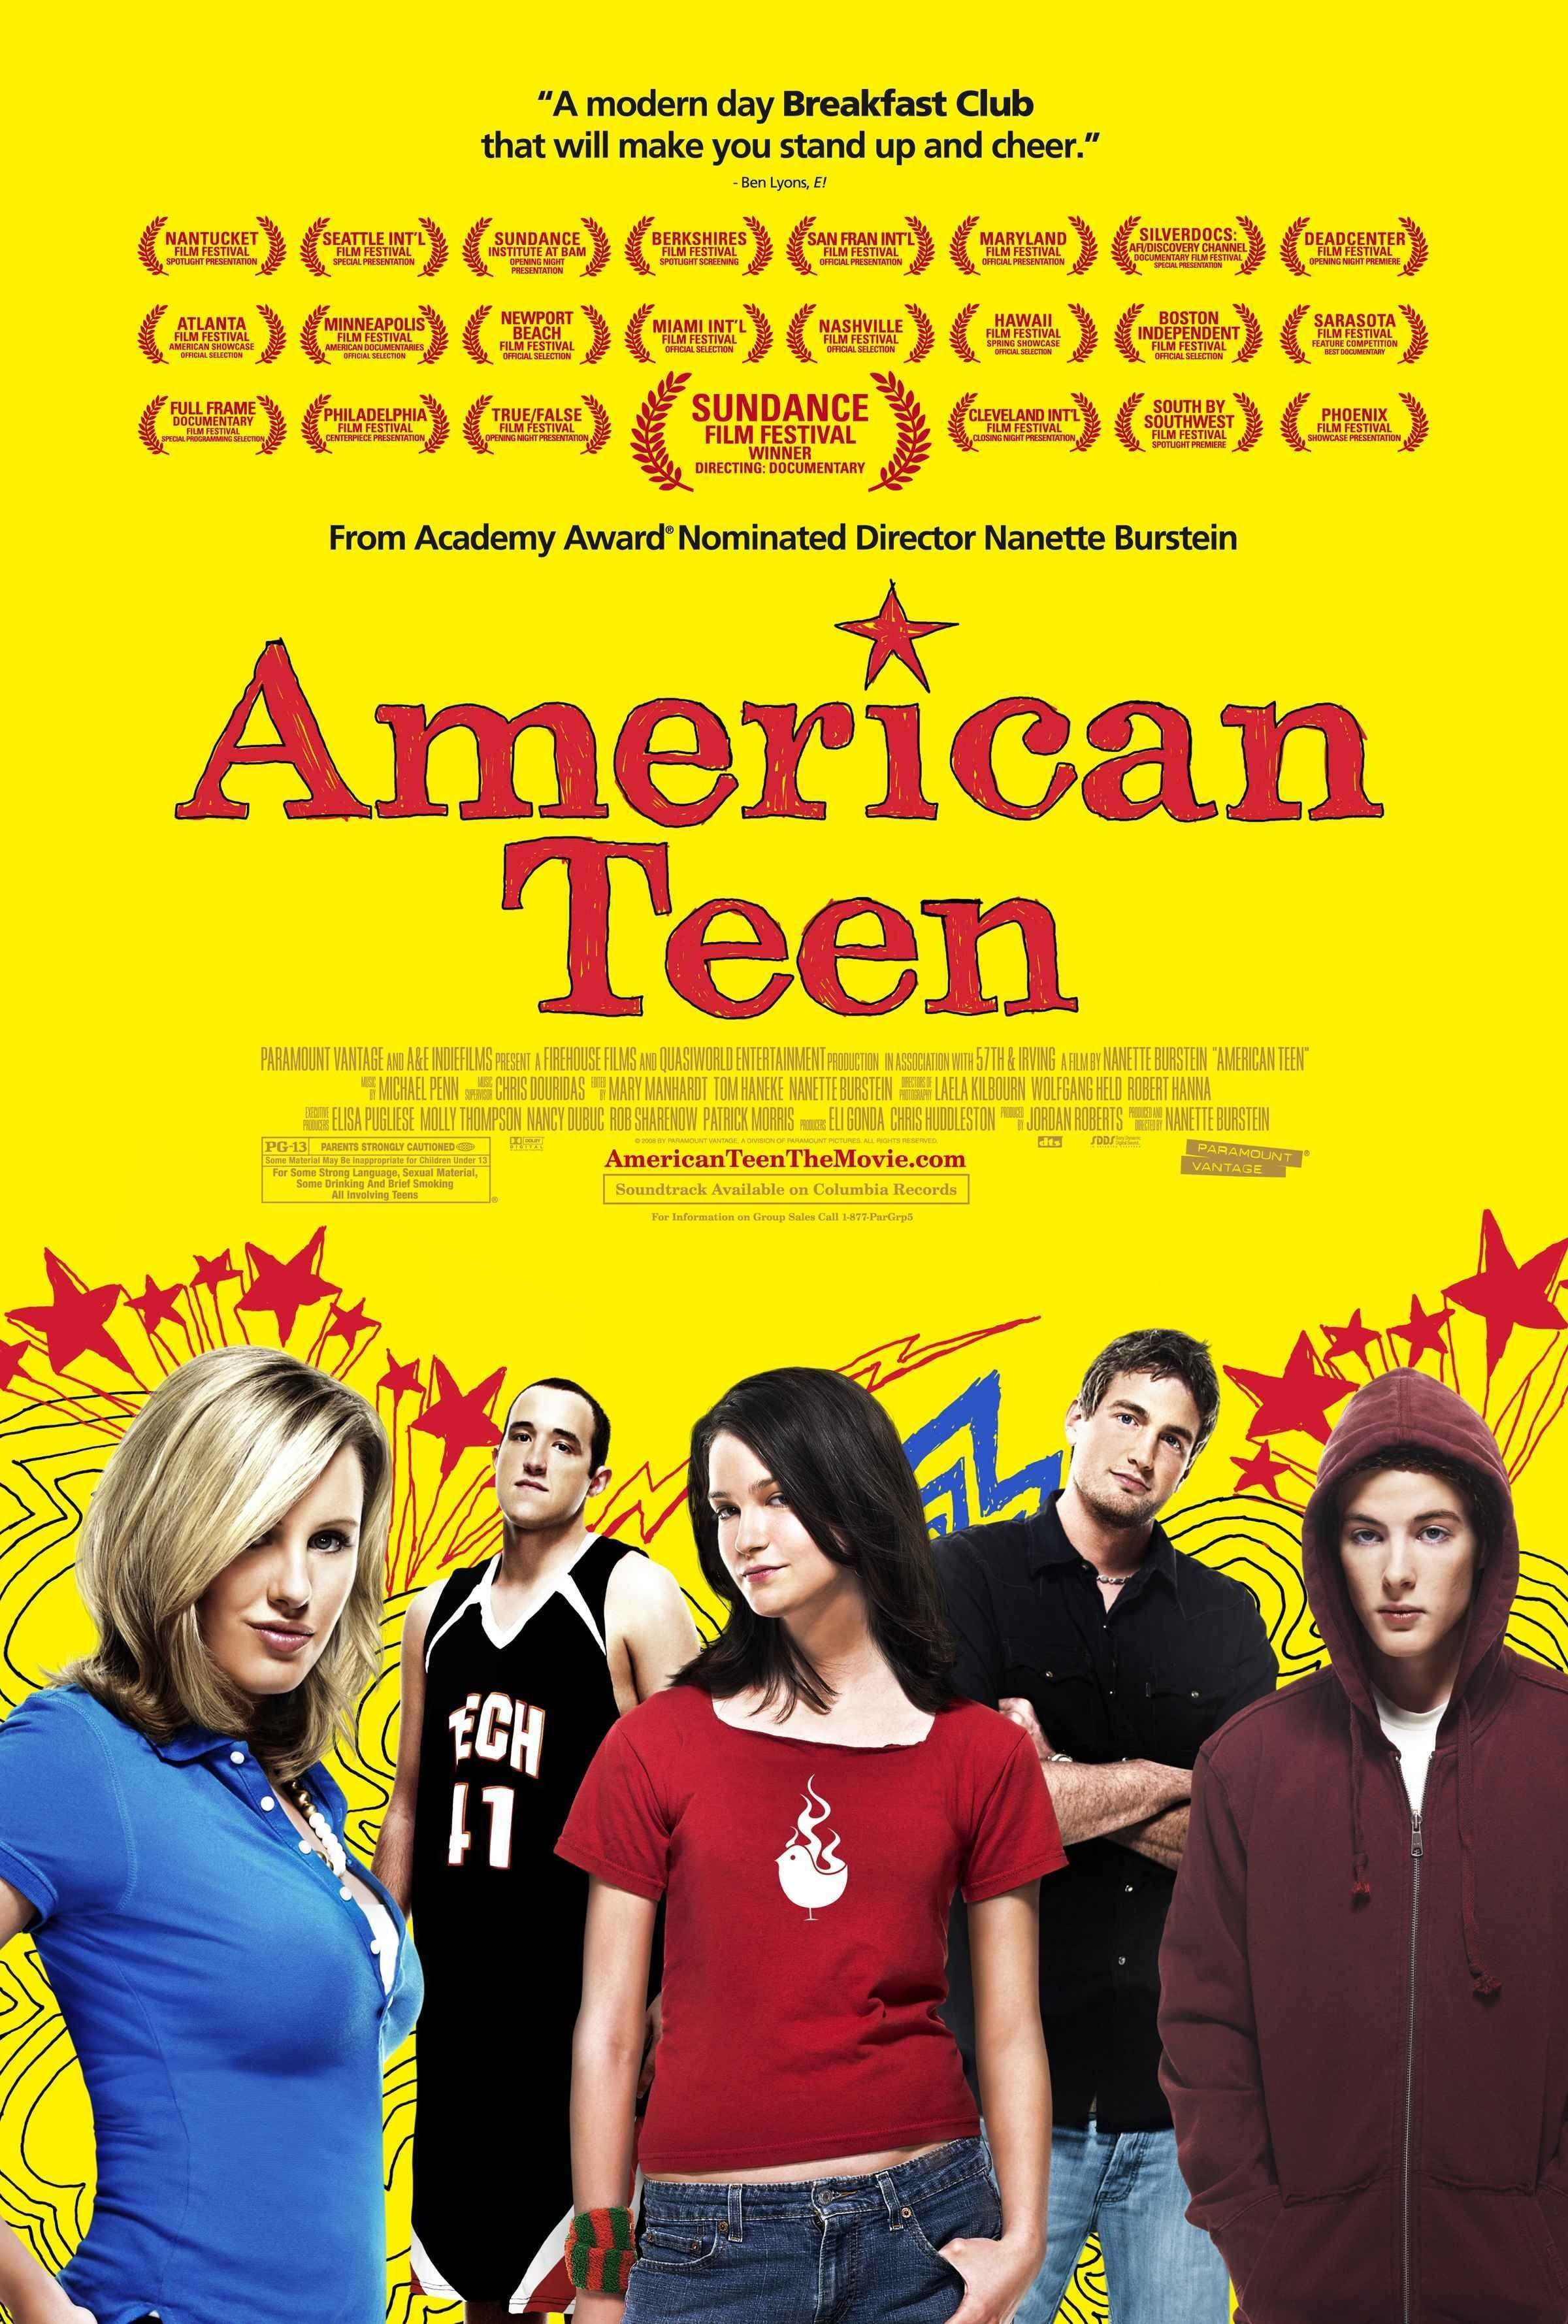 American teen is much